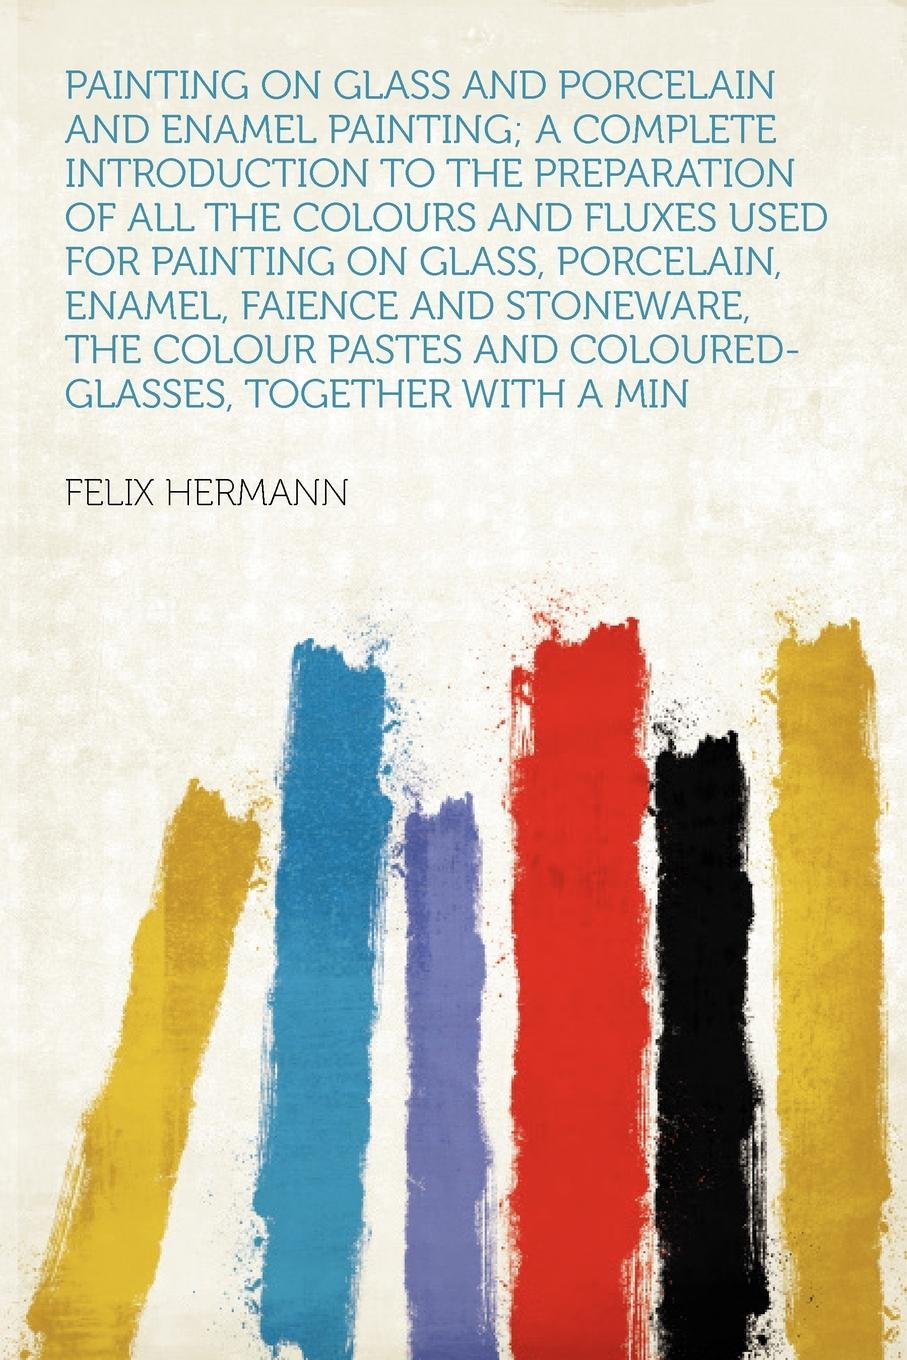 Download Painting on Glass and Porcelain and Enamel Painting; a Complete Introduction to the Preparation of All the Colours and Fluxes Used for Painting on ... and Coloured-glasses, Together With a Min pdf